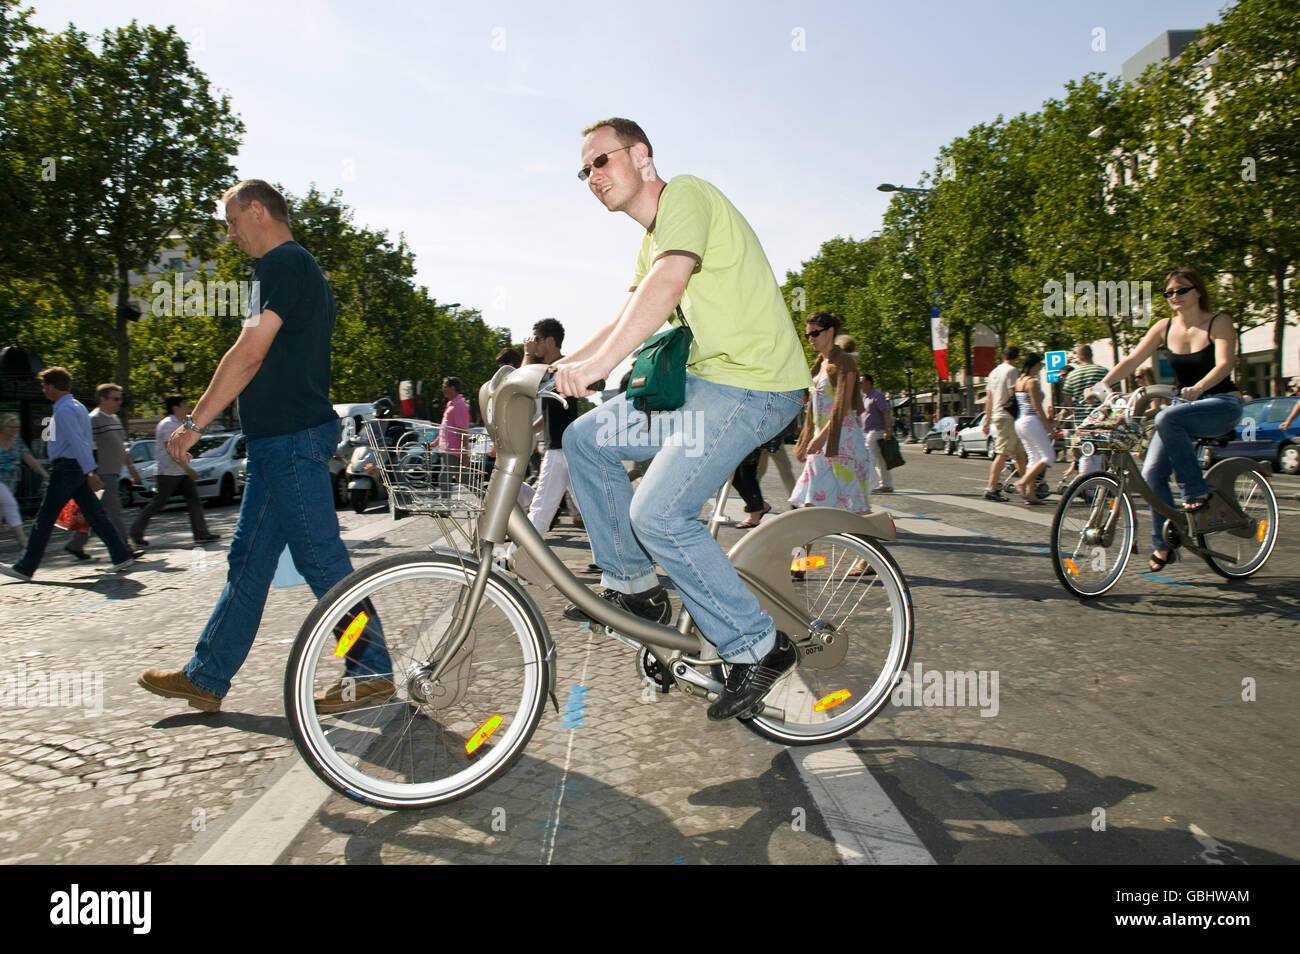 A man rides a Velib' bicycle across the Champs-Elysees in Paris, France, 15th July 2007. - Stock Image